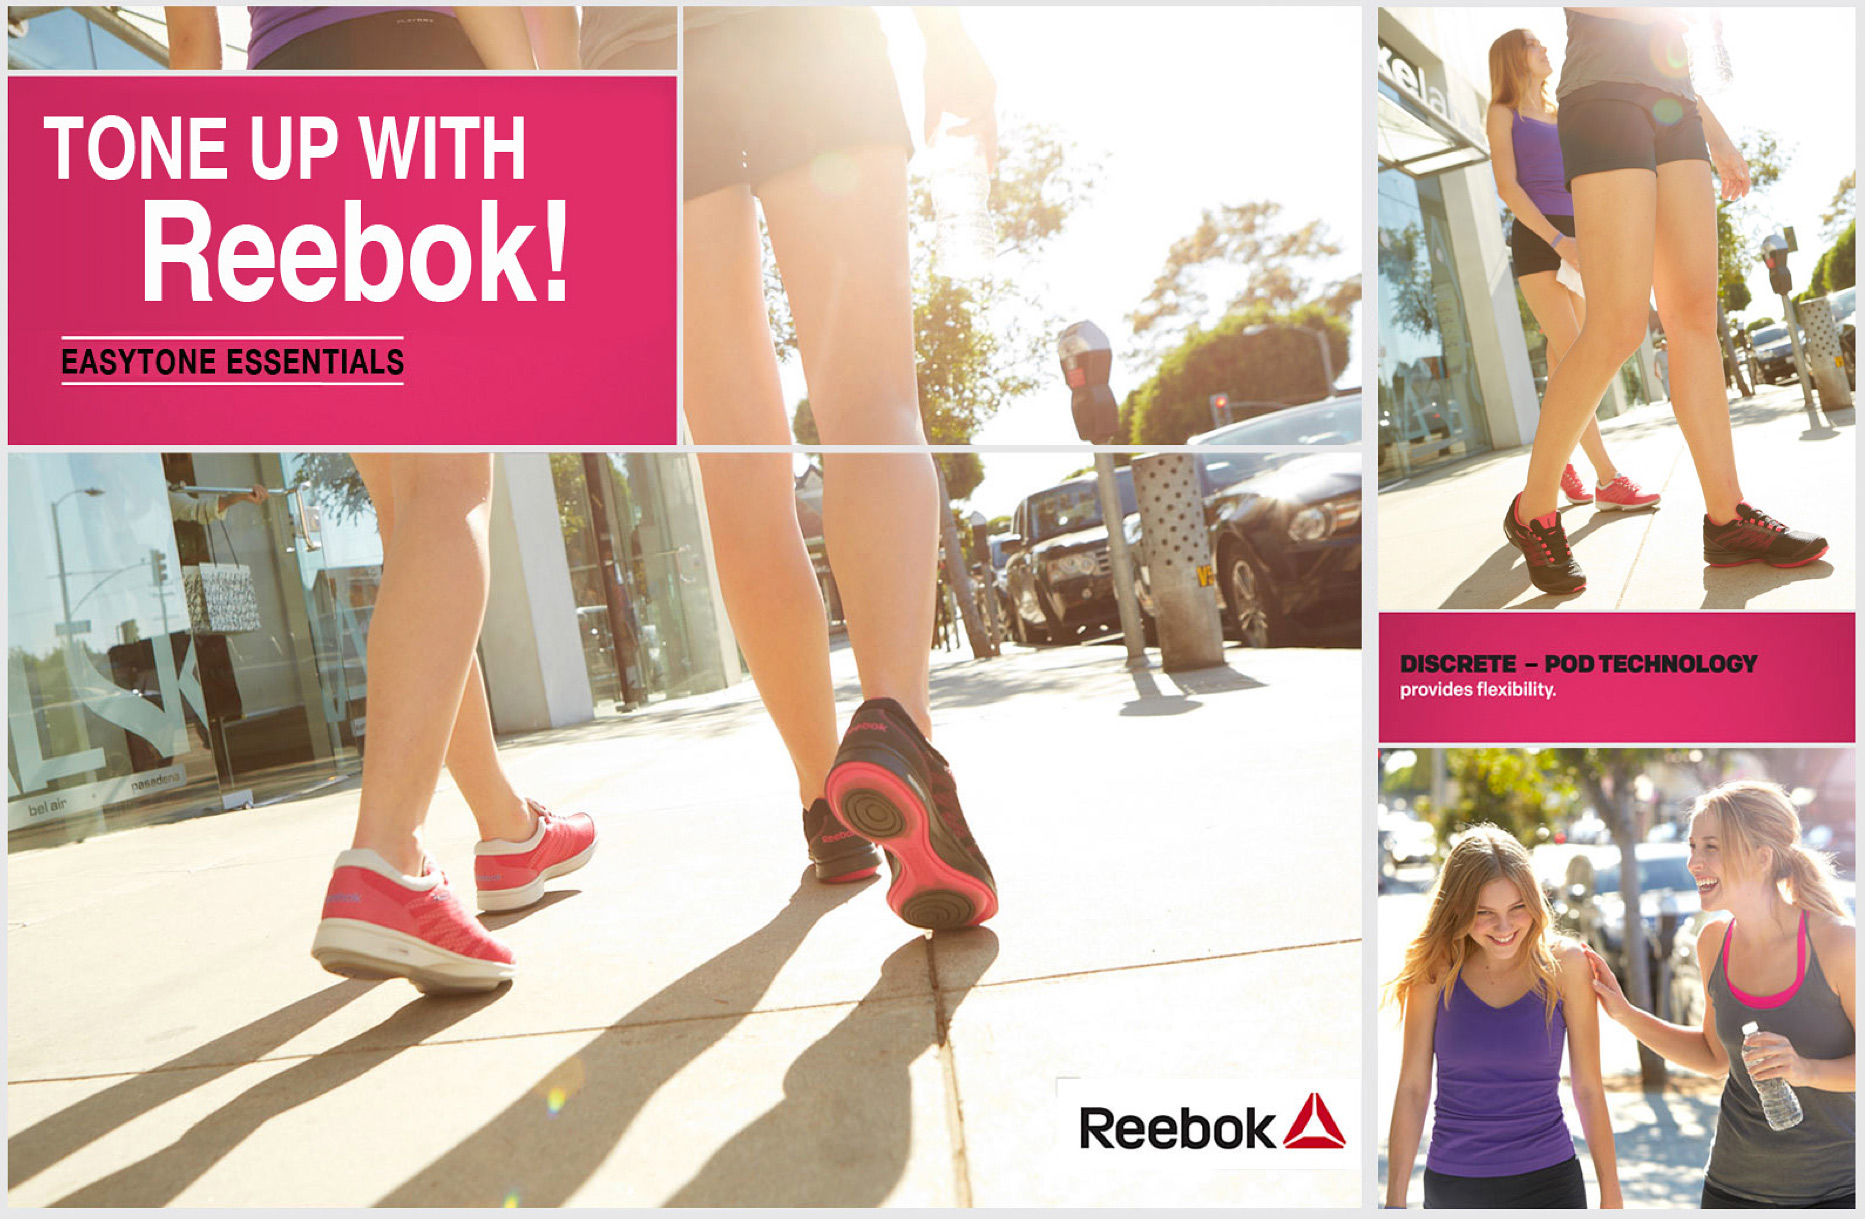 Reebok_Womens_Sports_Athletic_Advertising_Photographer_Los_Angeles